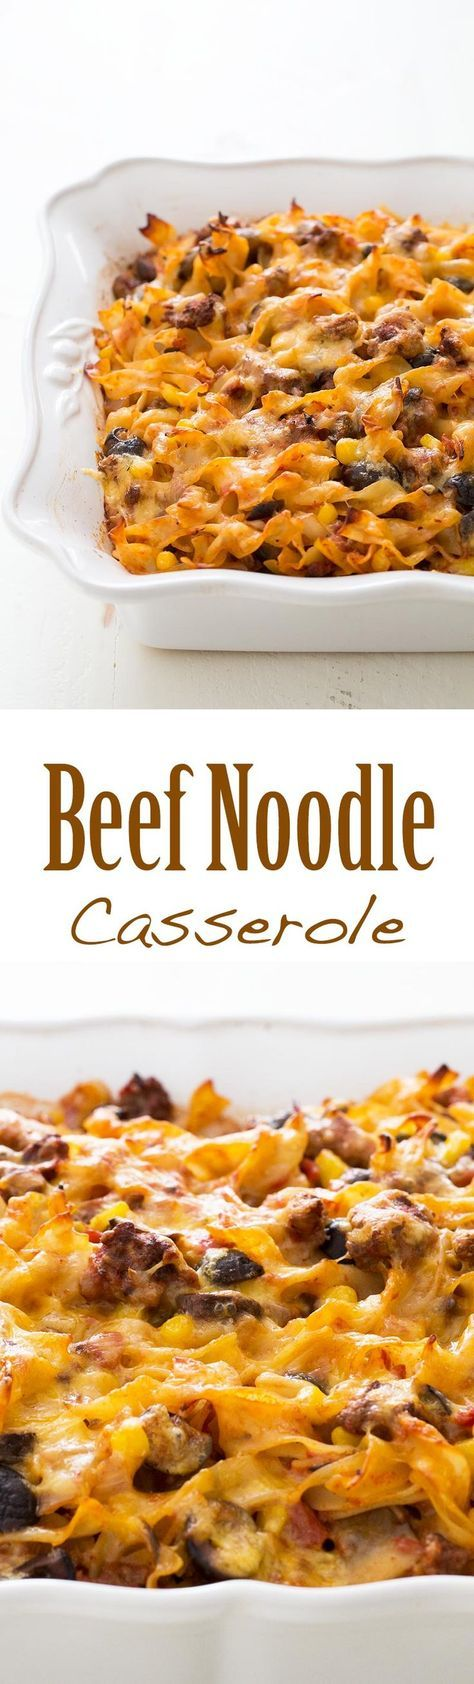 BEST Beef Noodle Casserole EVER! Our favorite recipe from my grandmother is this ground beef and egg noodle casserole with you won't believe all the other wonderful ingredients. Serves a crowd! On www.simplyrecipes.com